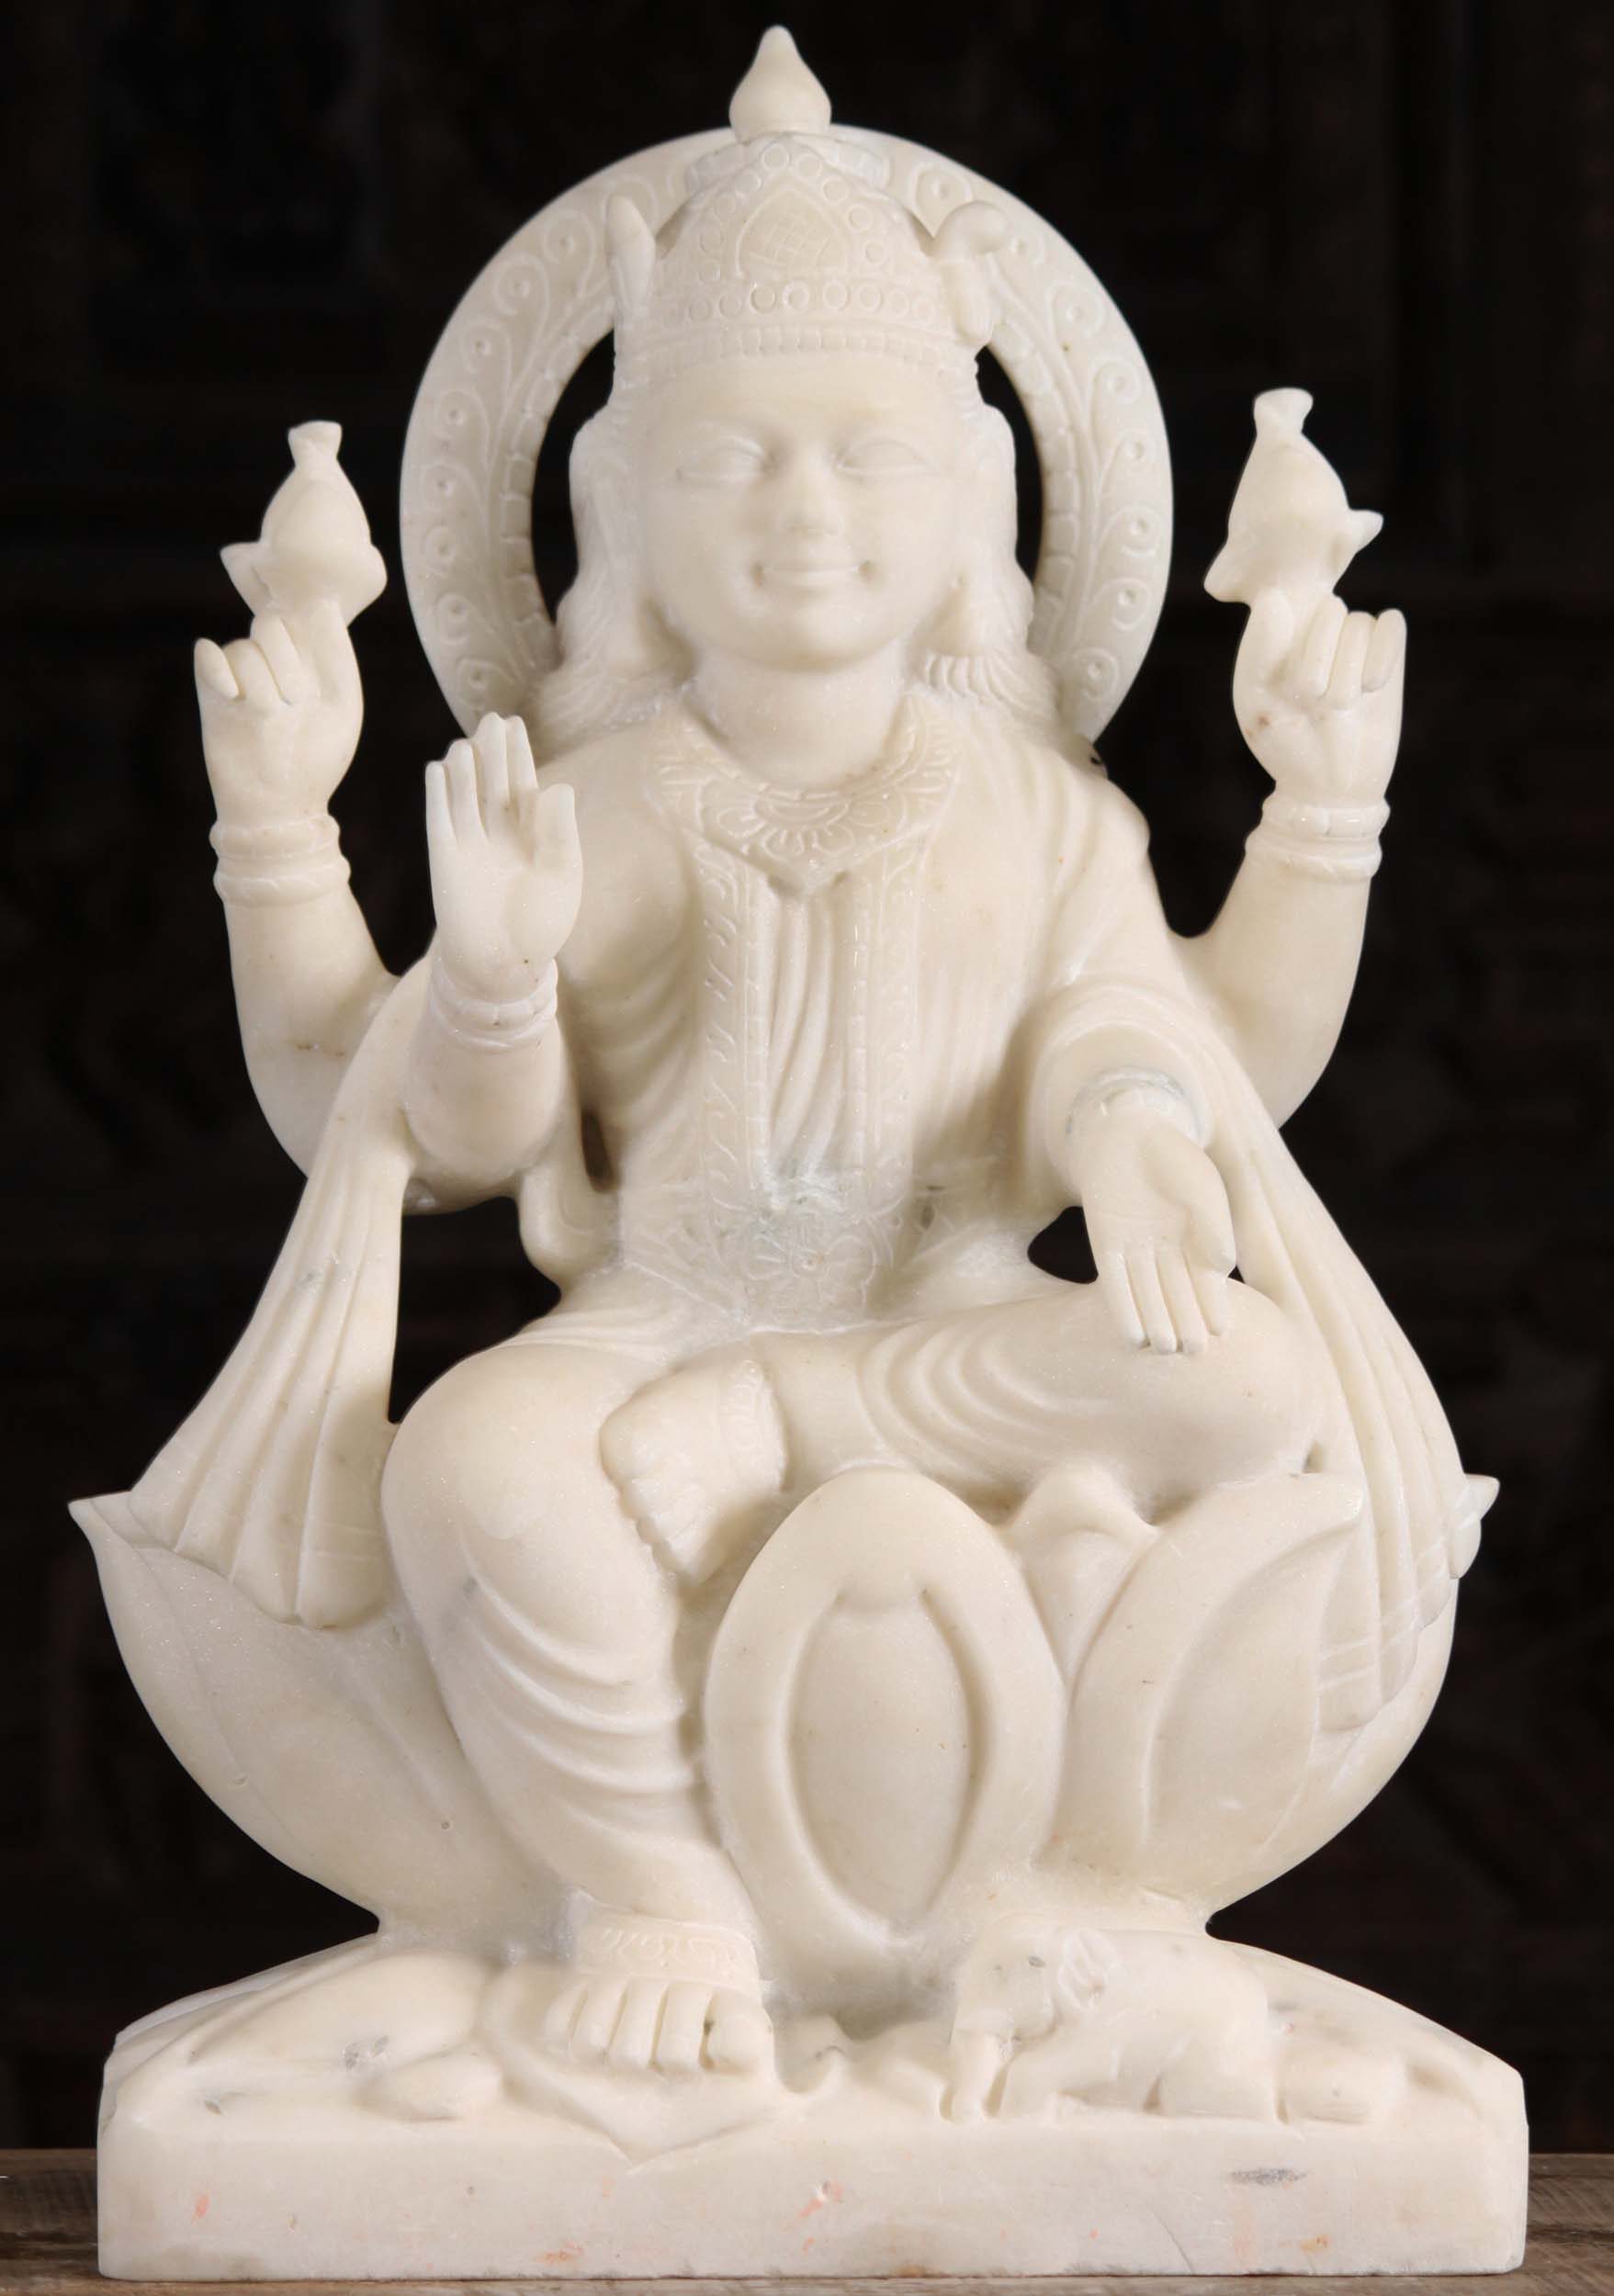 White Marble Lakshmi Statue Holding Two Lotus Flowers 24 90wm70a